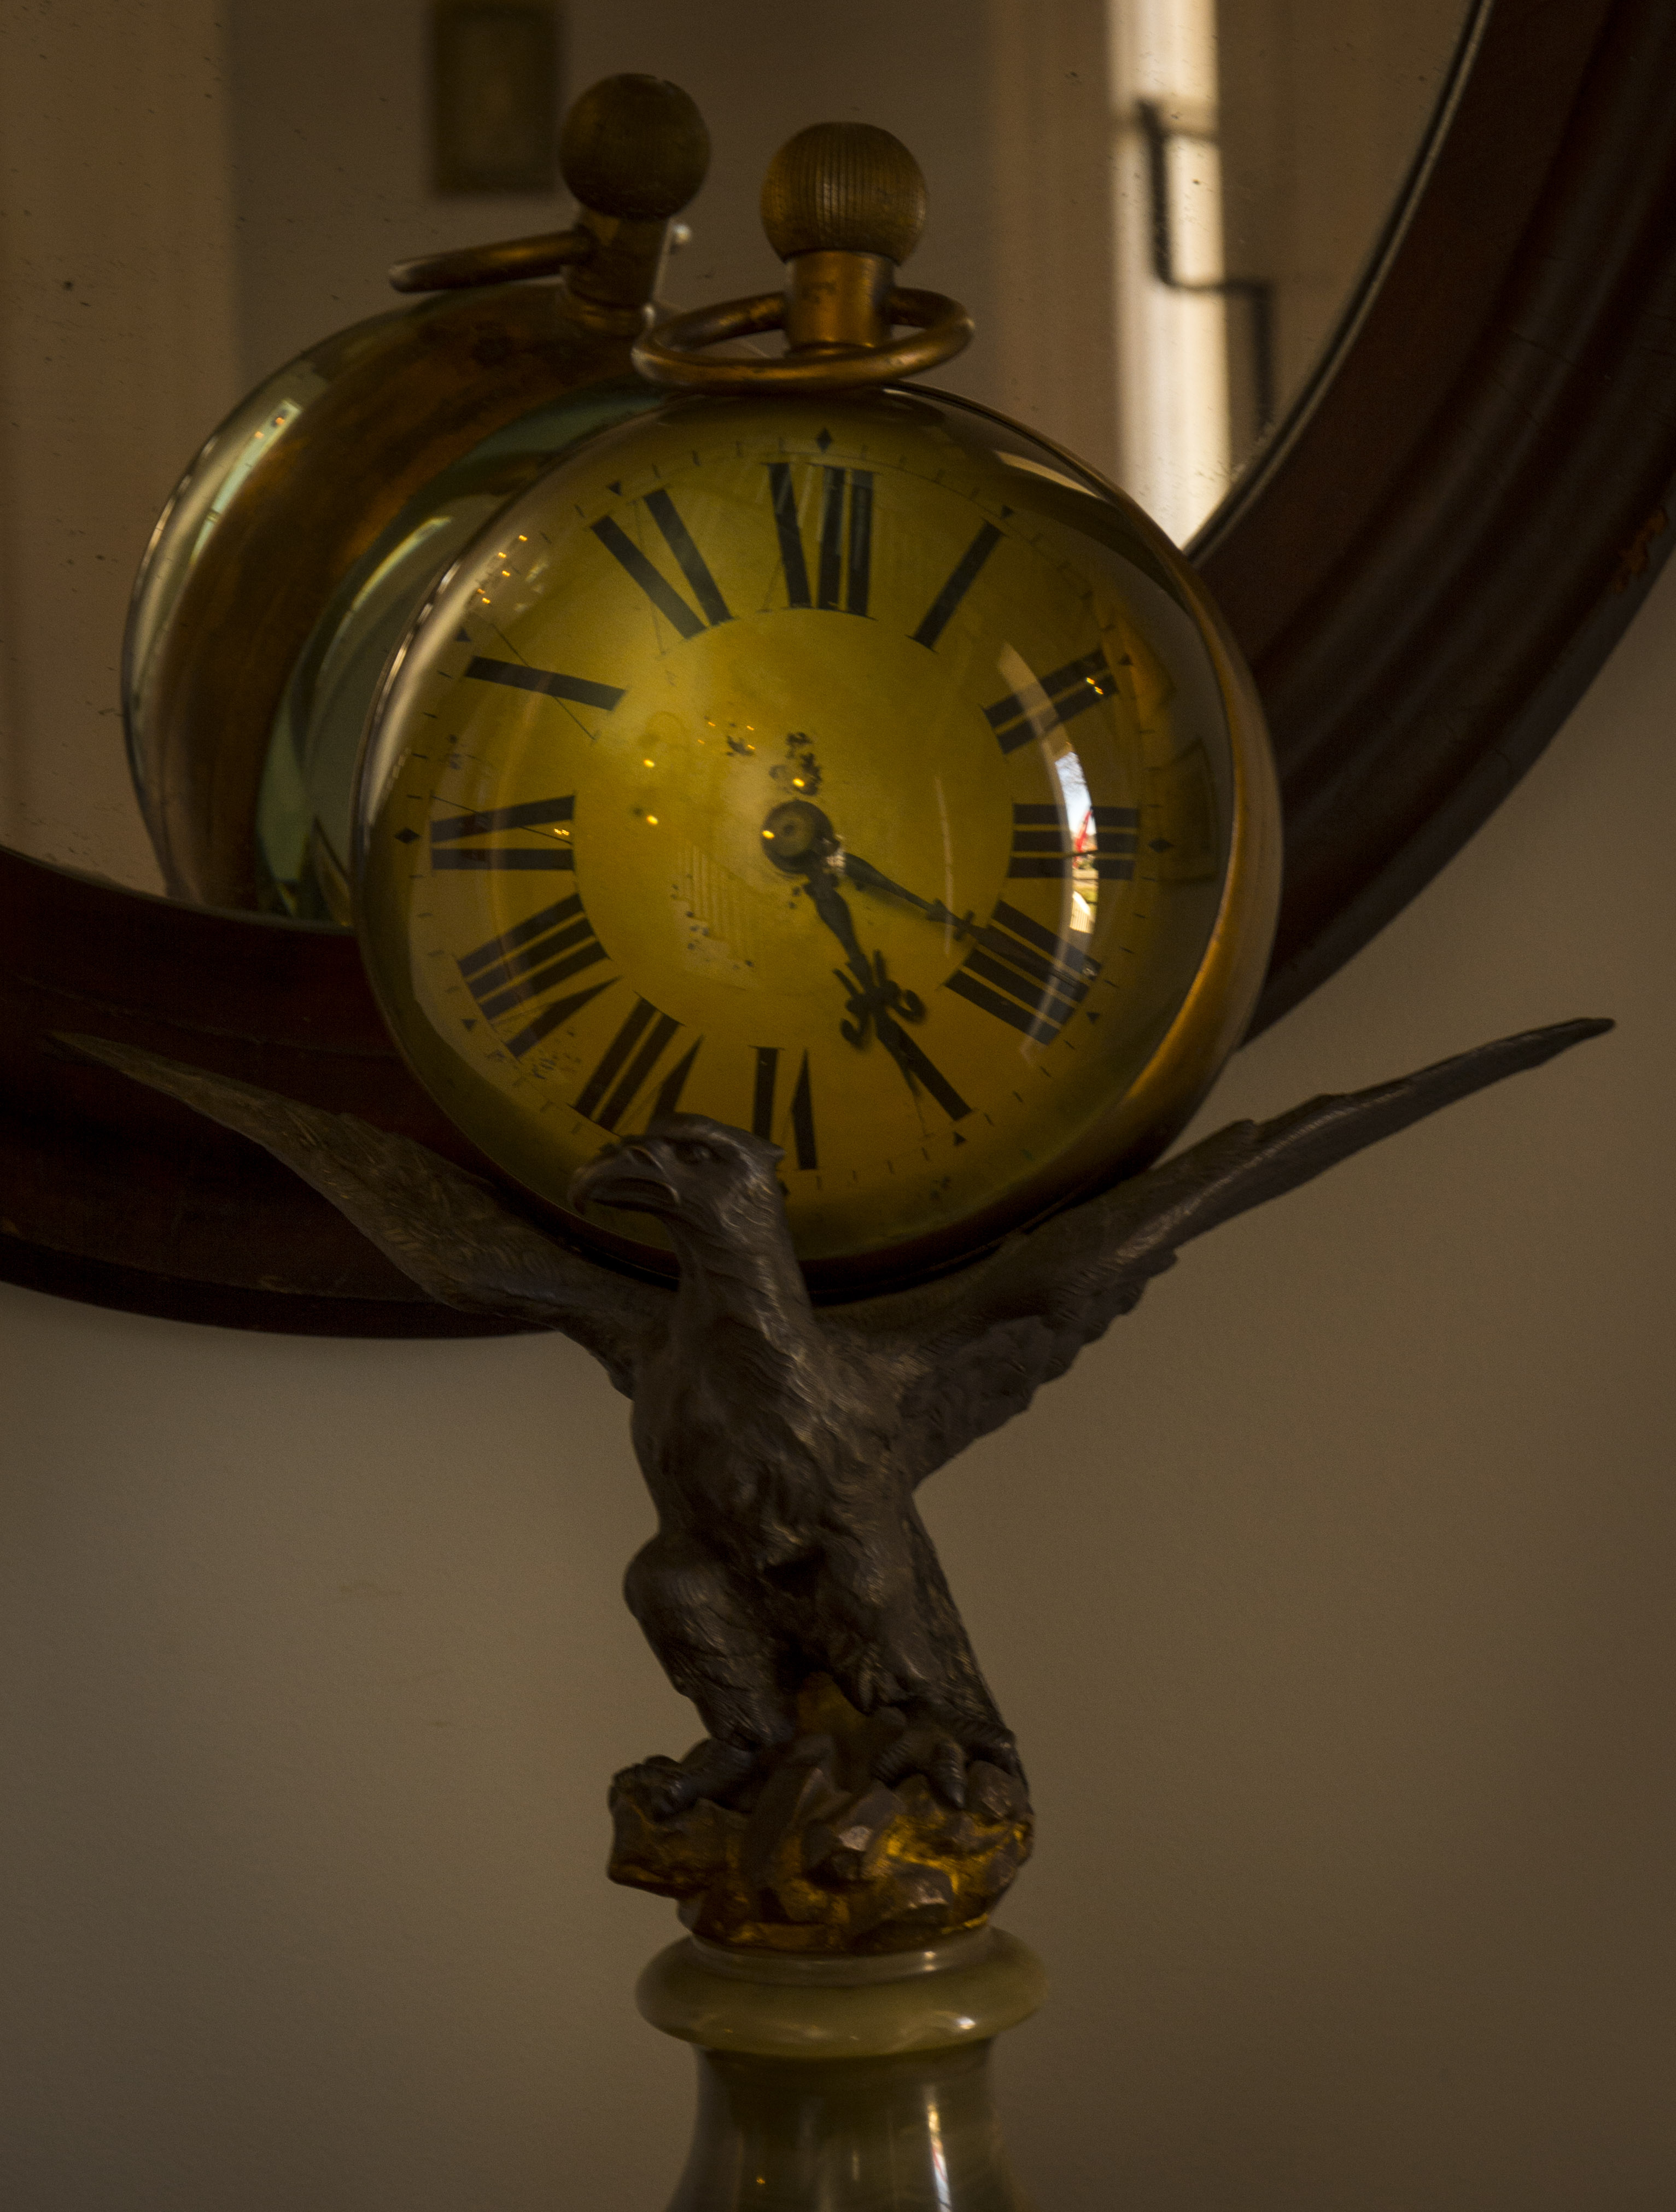 The antique clock ...